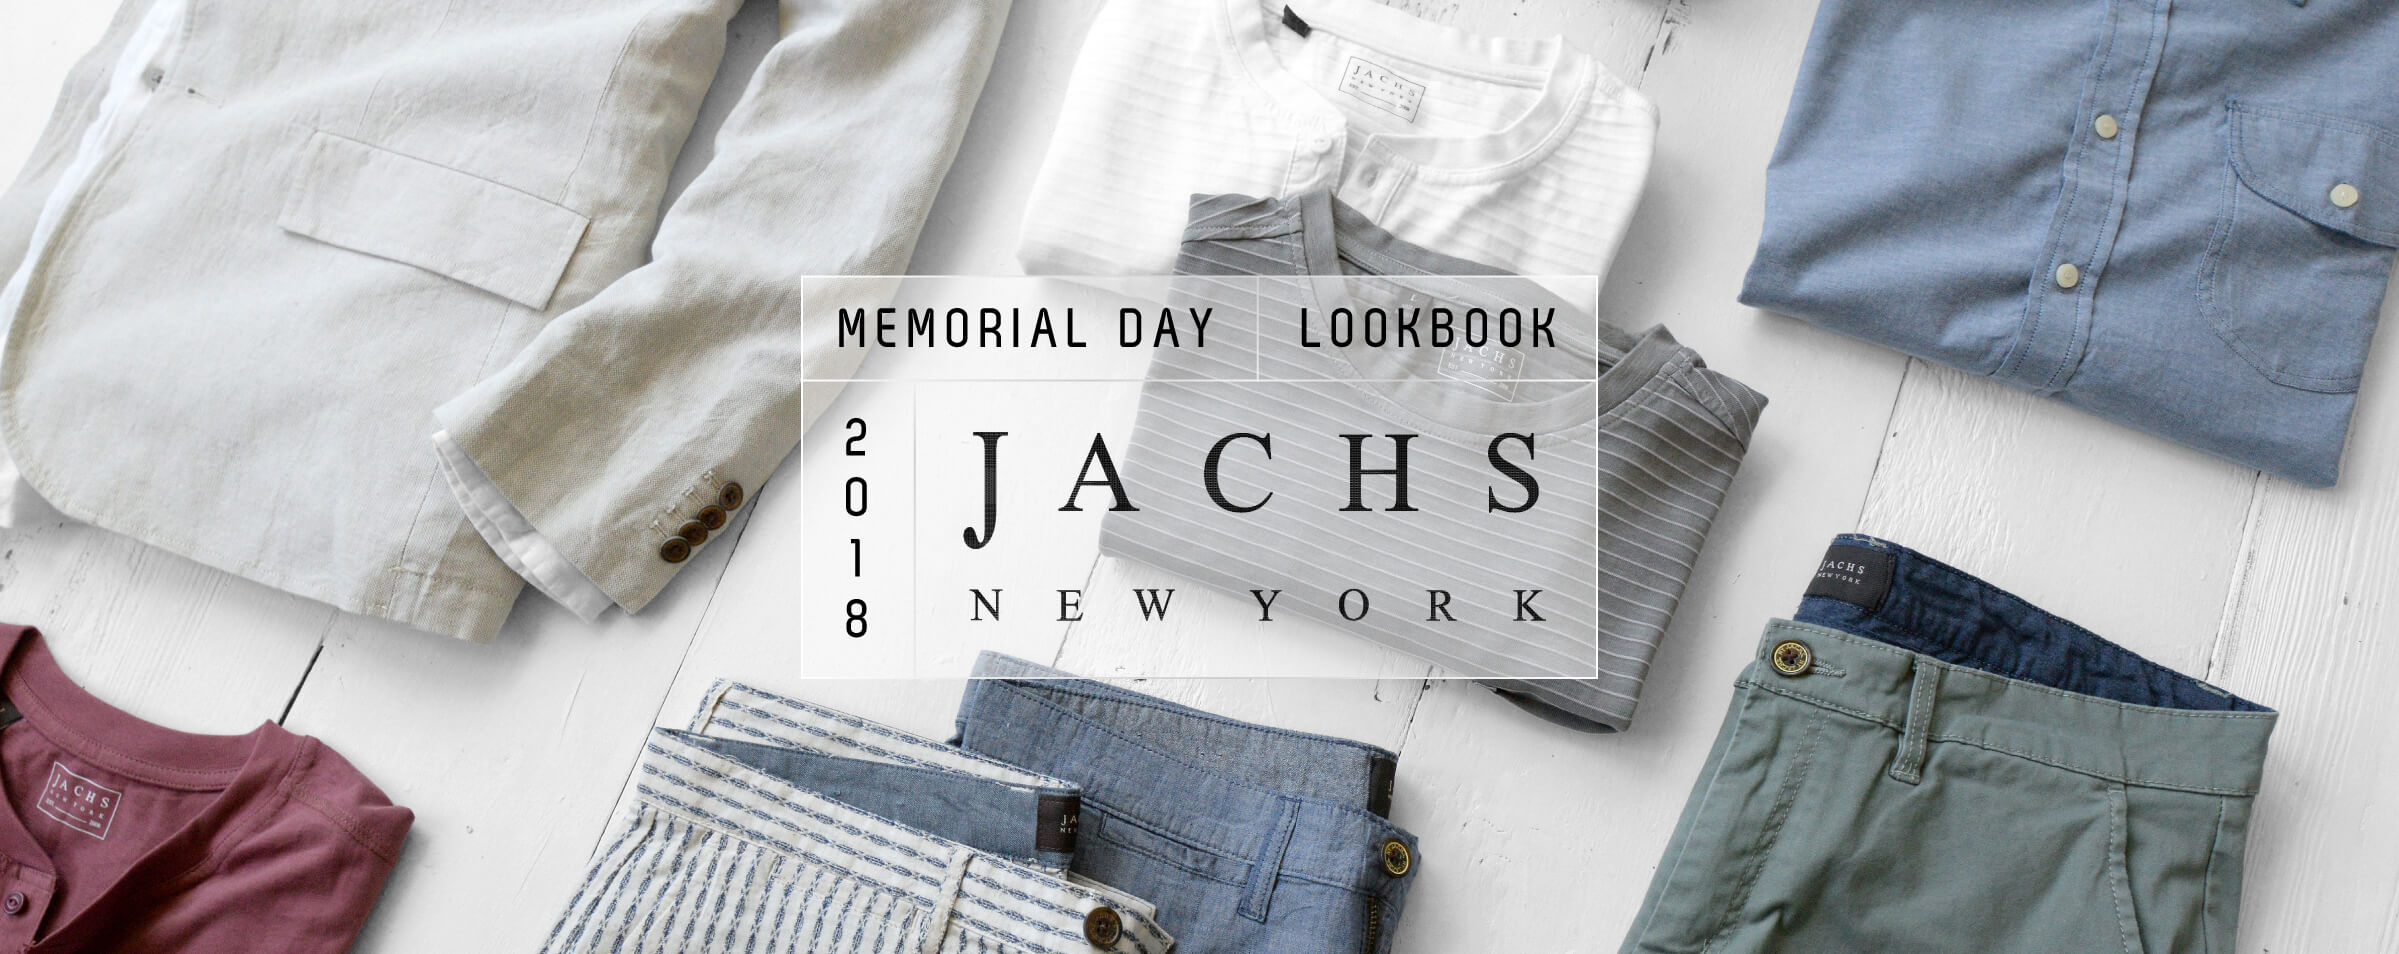 JachsNY Memorial Day Lookbook